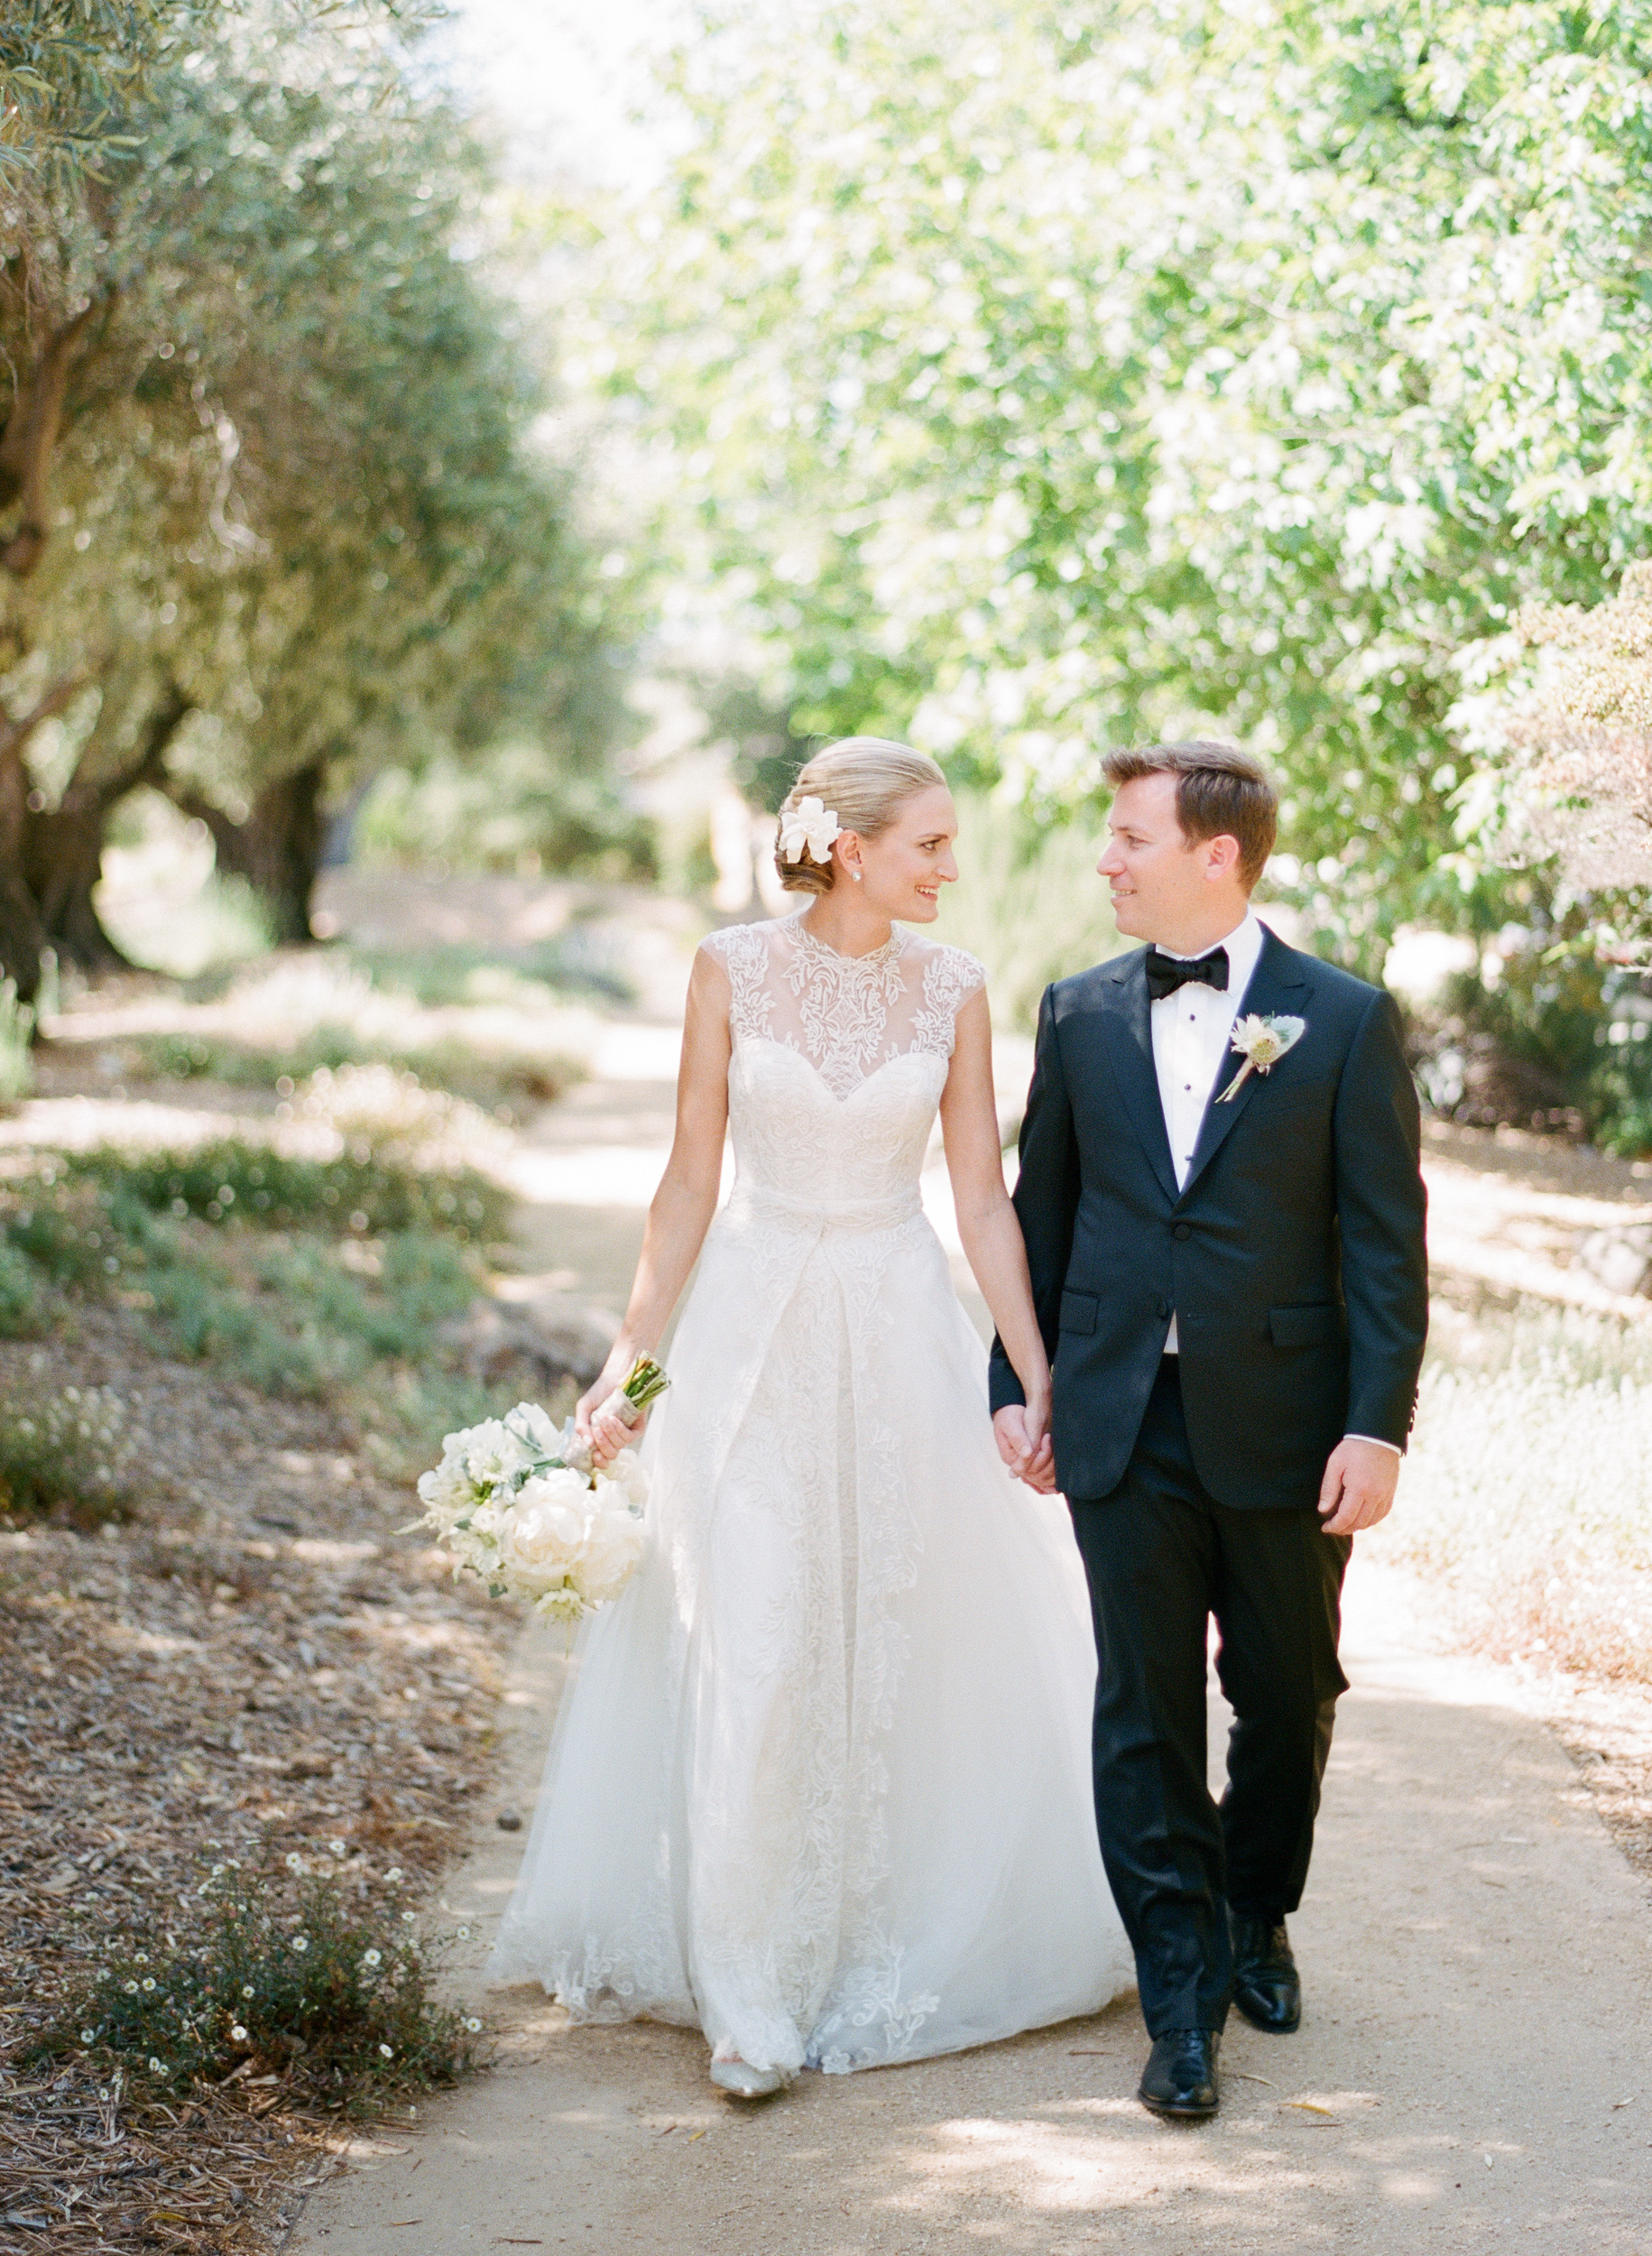 Bride and groom walk hand in hand through an olive grove, the bride wearing a gorgeous Monique Lhuillier gown; photo by Sylvie Gil